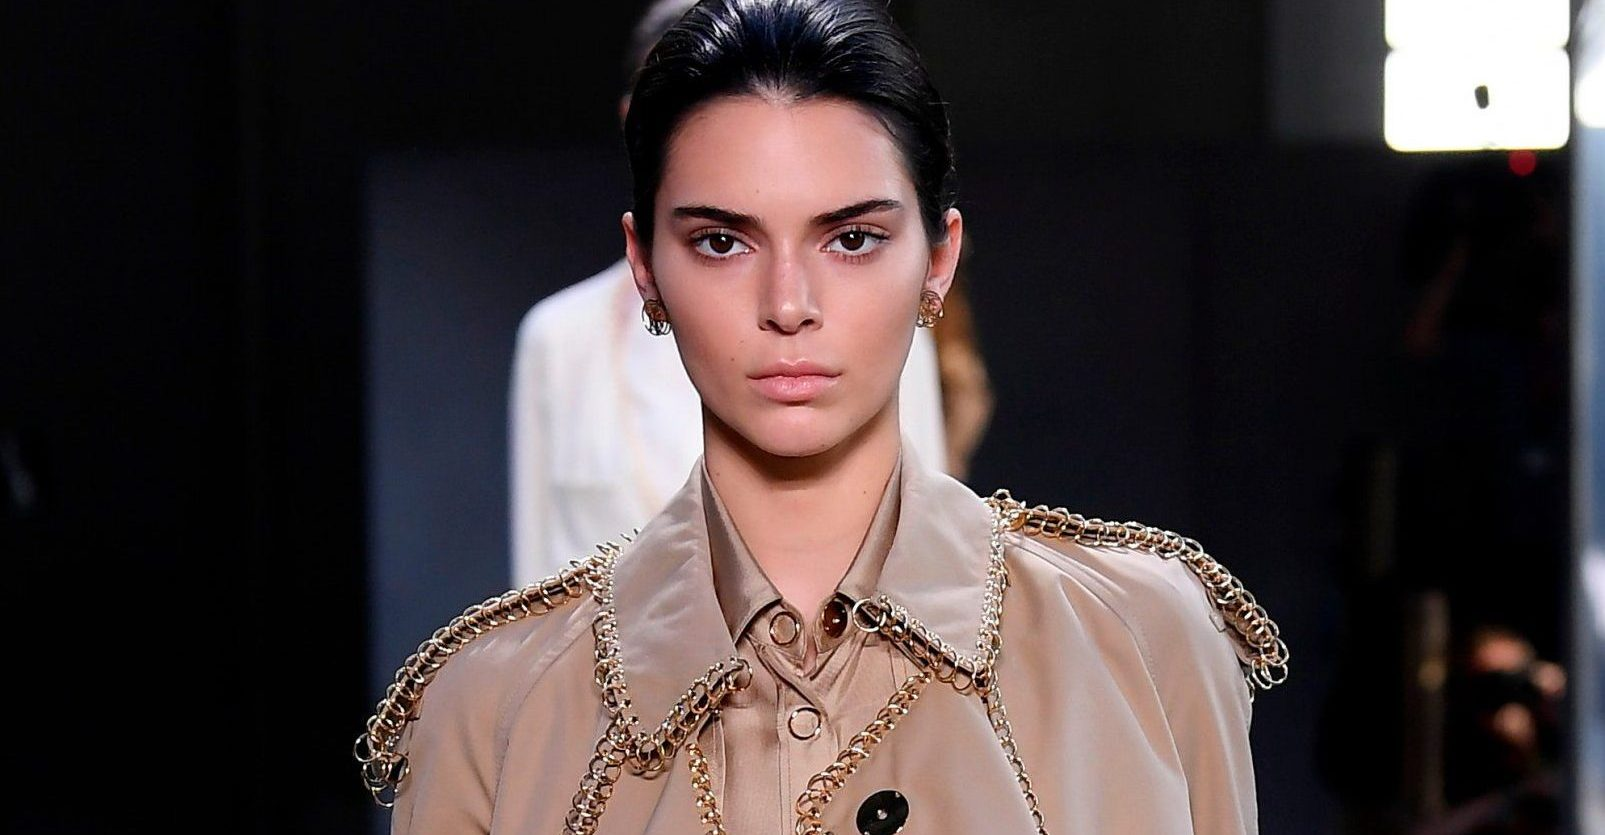 Riccardo Tisci's first Burberry collection at London Fashion Week sees a return to the innovative luxury that Bailey created